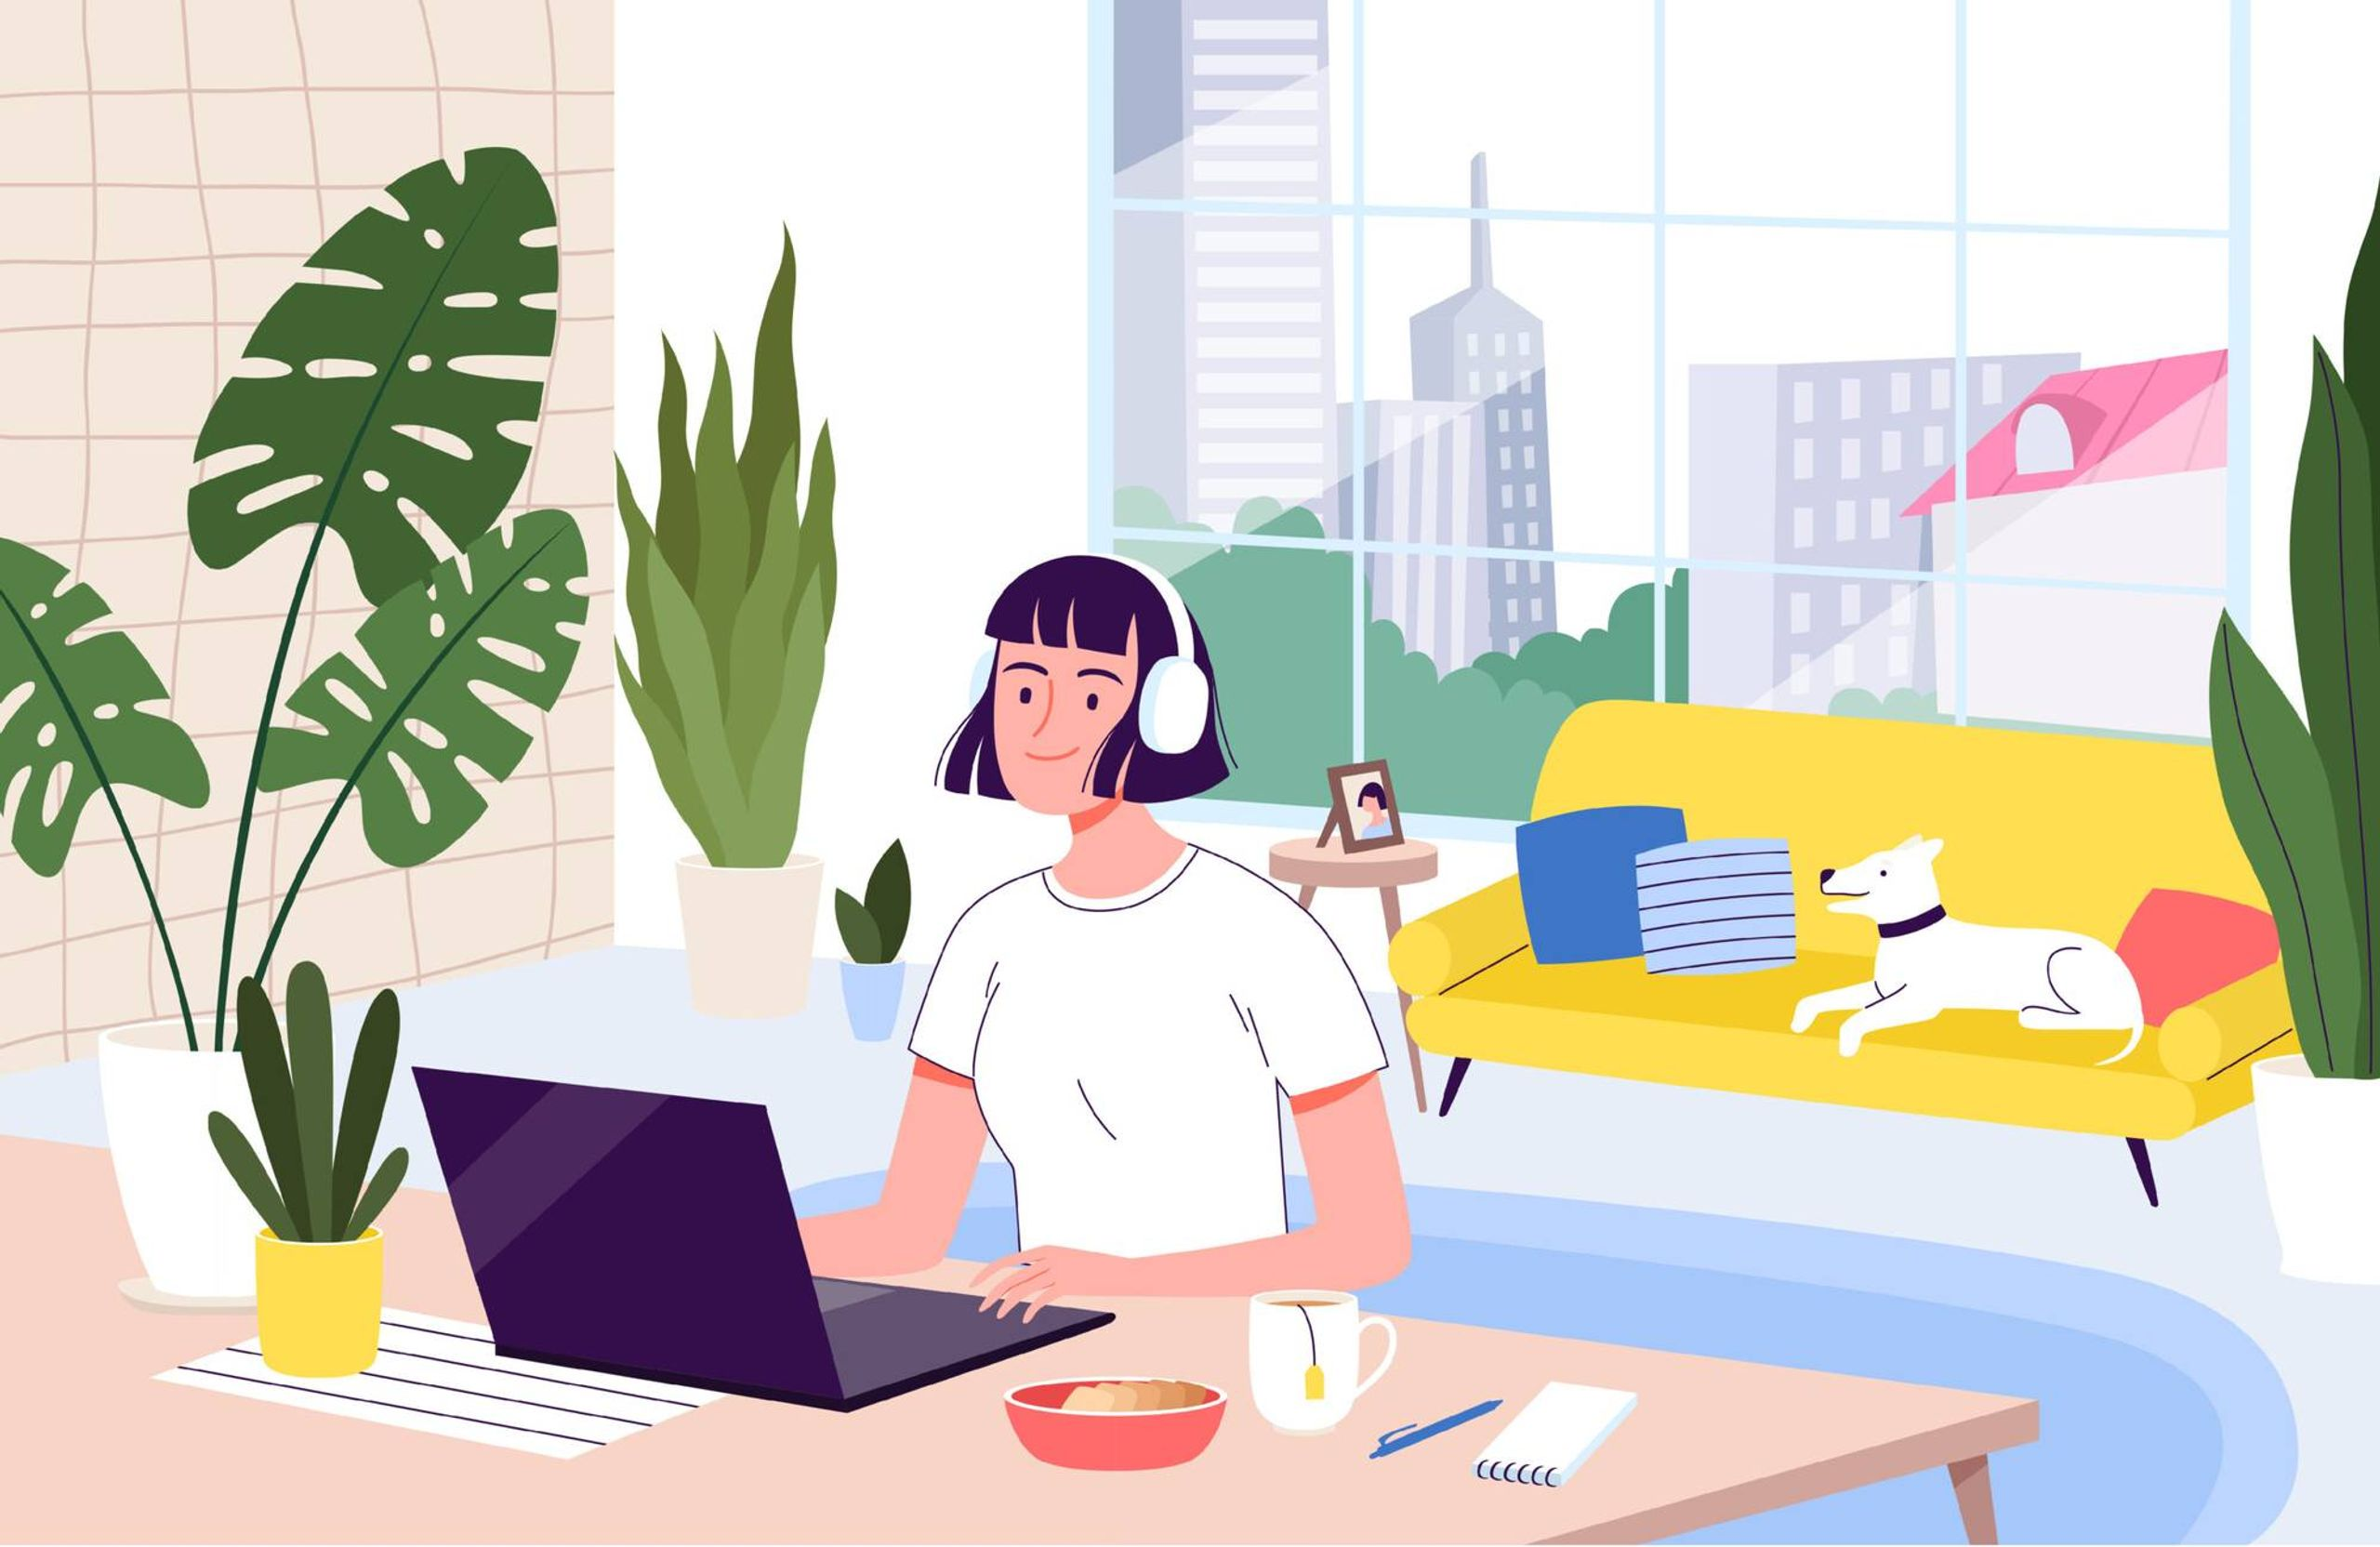 Illustration of woman sitting in an apartment at a desk with open laptop while wearing headphones. Rewire PBS Work Working from home